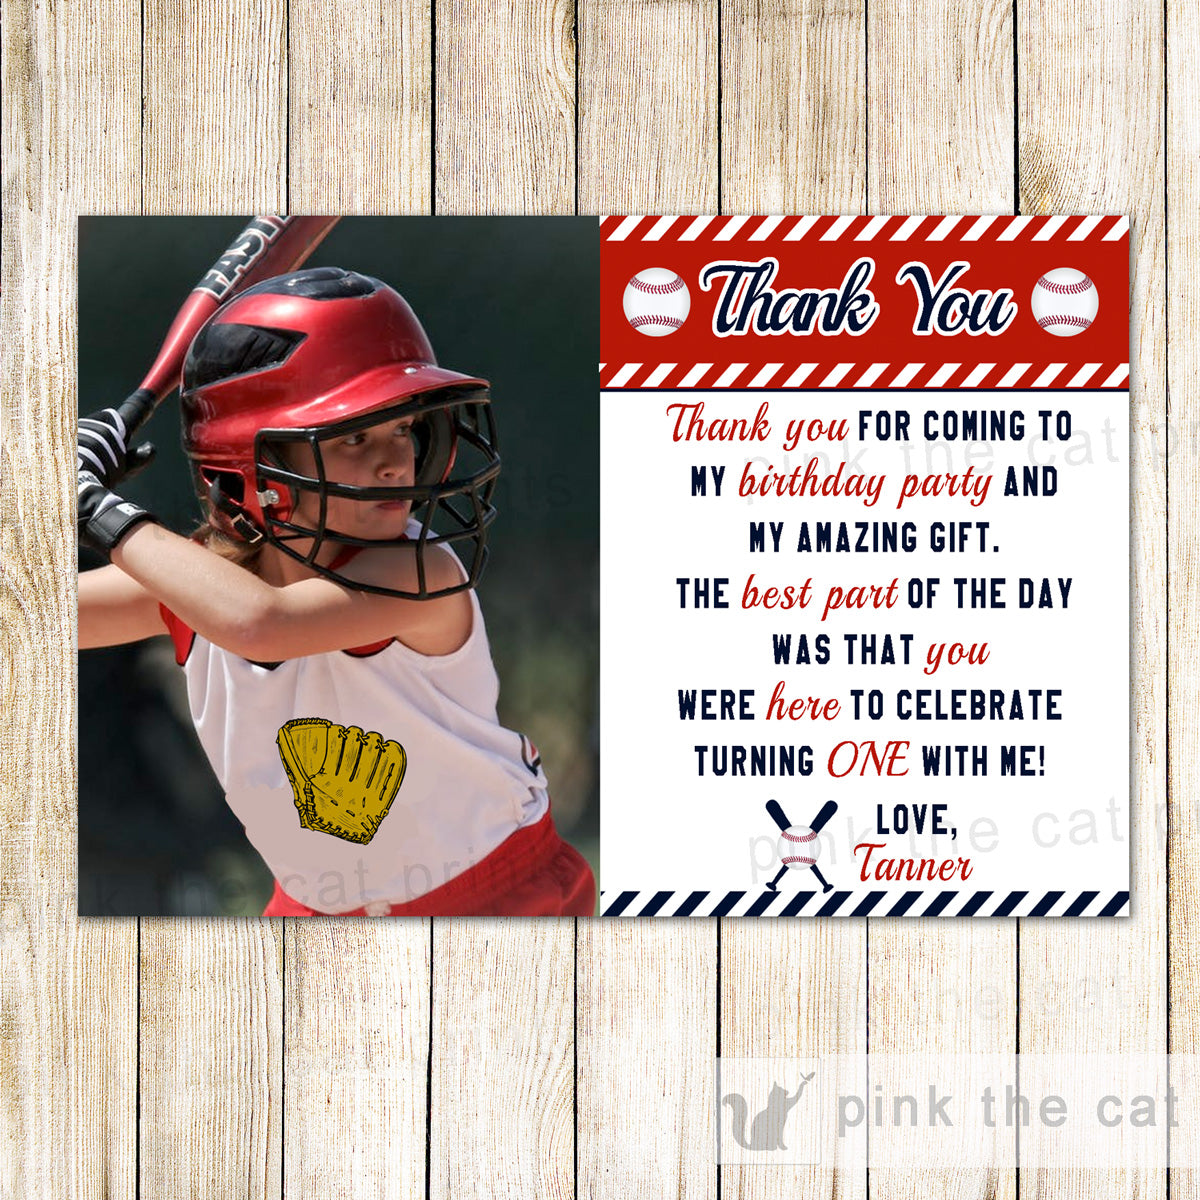 Thank You Cards Baseball Kids Birthday Photo Printable Pink The Cat Jpg 1200x1200